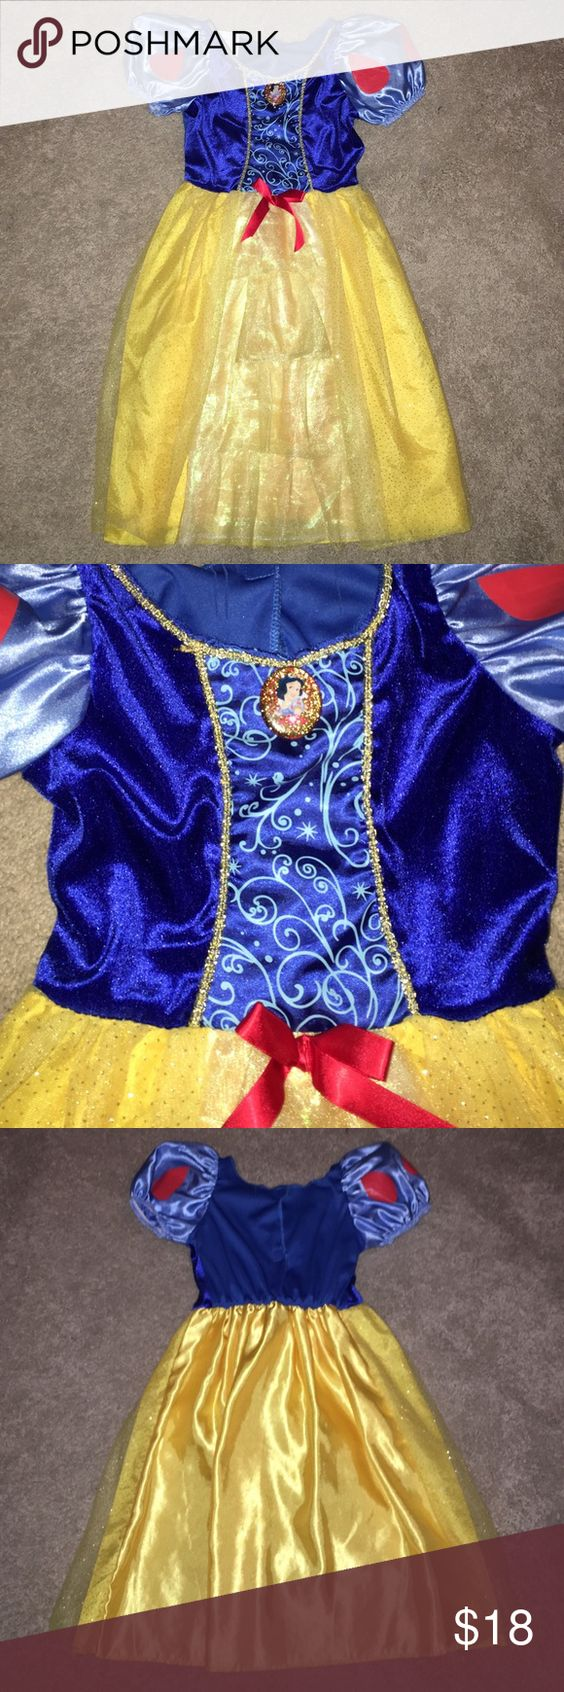 GIRLS 🍎 Snow White Dress 🍎Beautiful Snow White GIRLS dress up gown!! Let your little one feel like a princess in this beautiful dress! 🍎 Fits sizes 4-6X. ***Slight stretching of material in the back near Velcro*** Disney Costumes